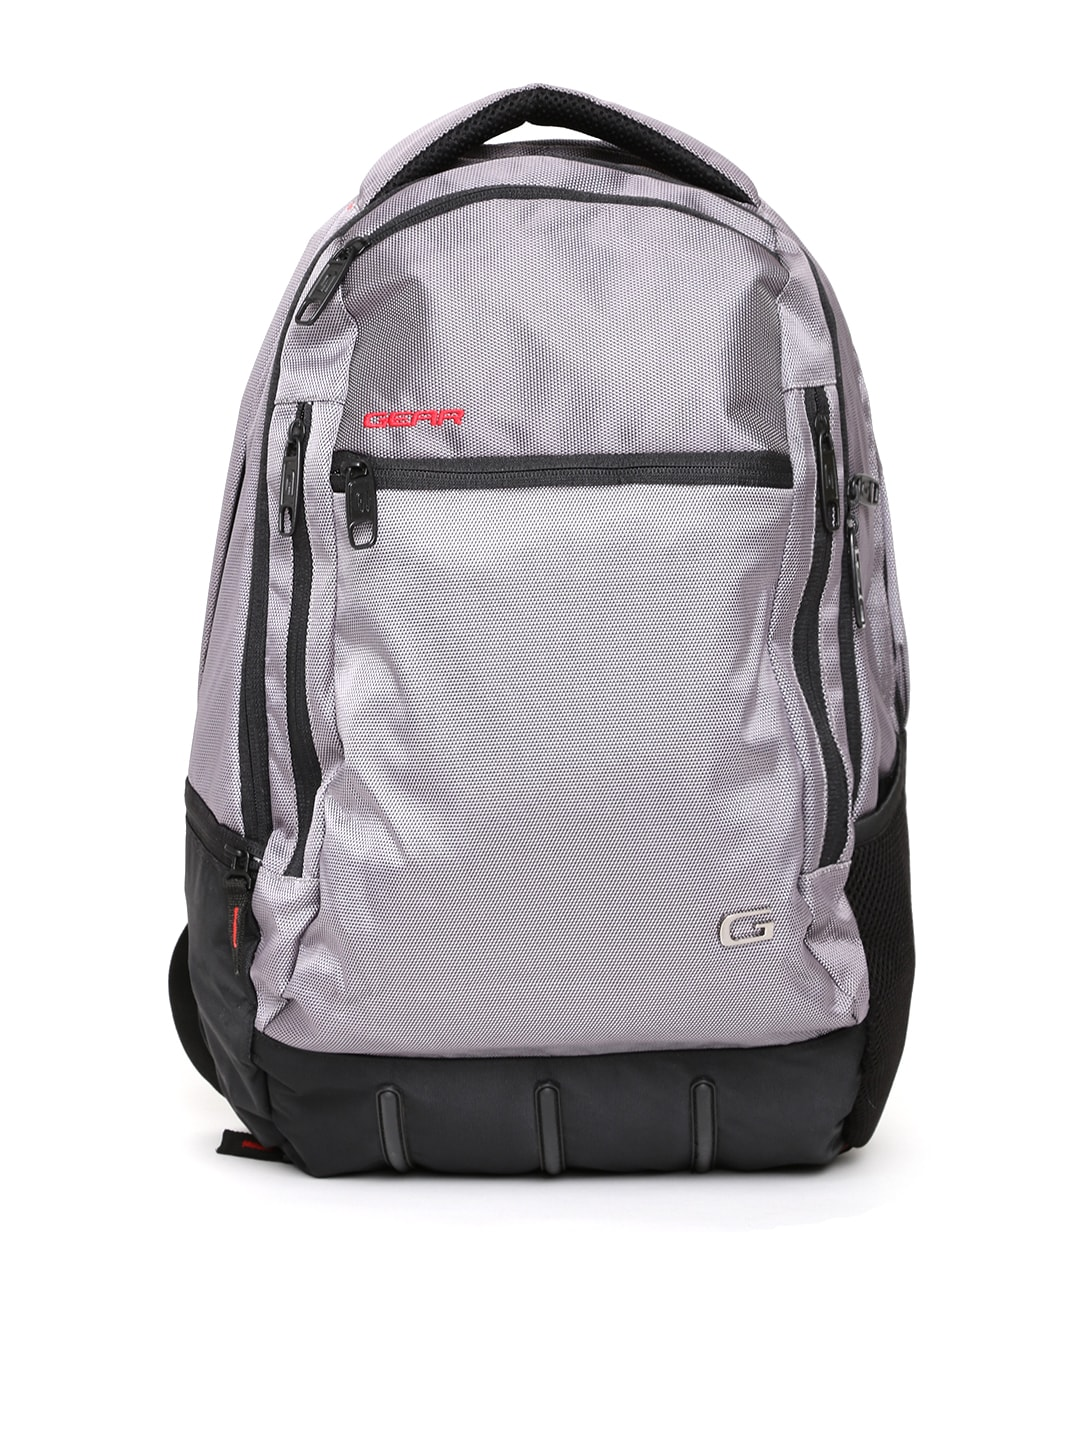 f8d190a61135 Leather Backpacks - Buy Leather Backpacks online in India